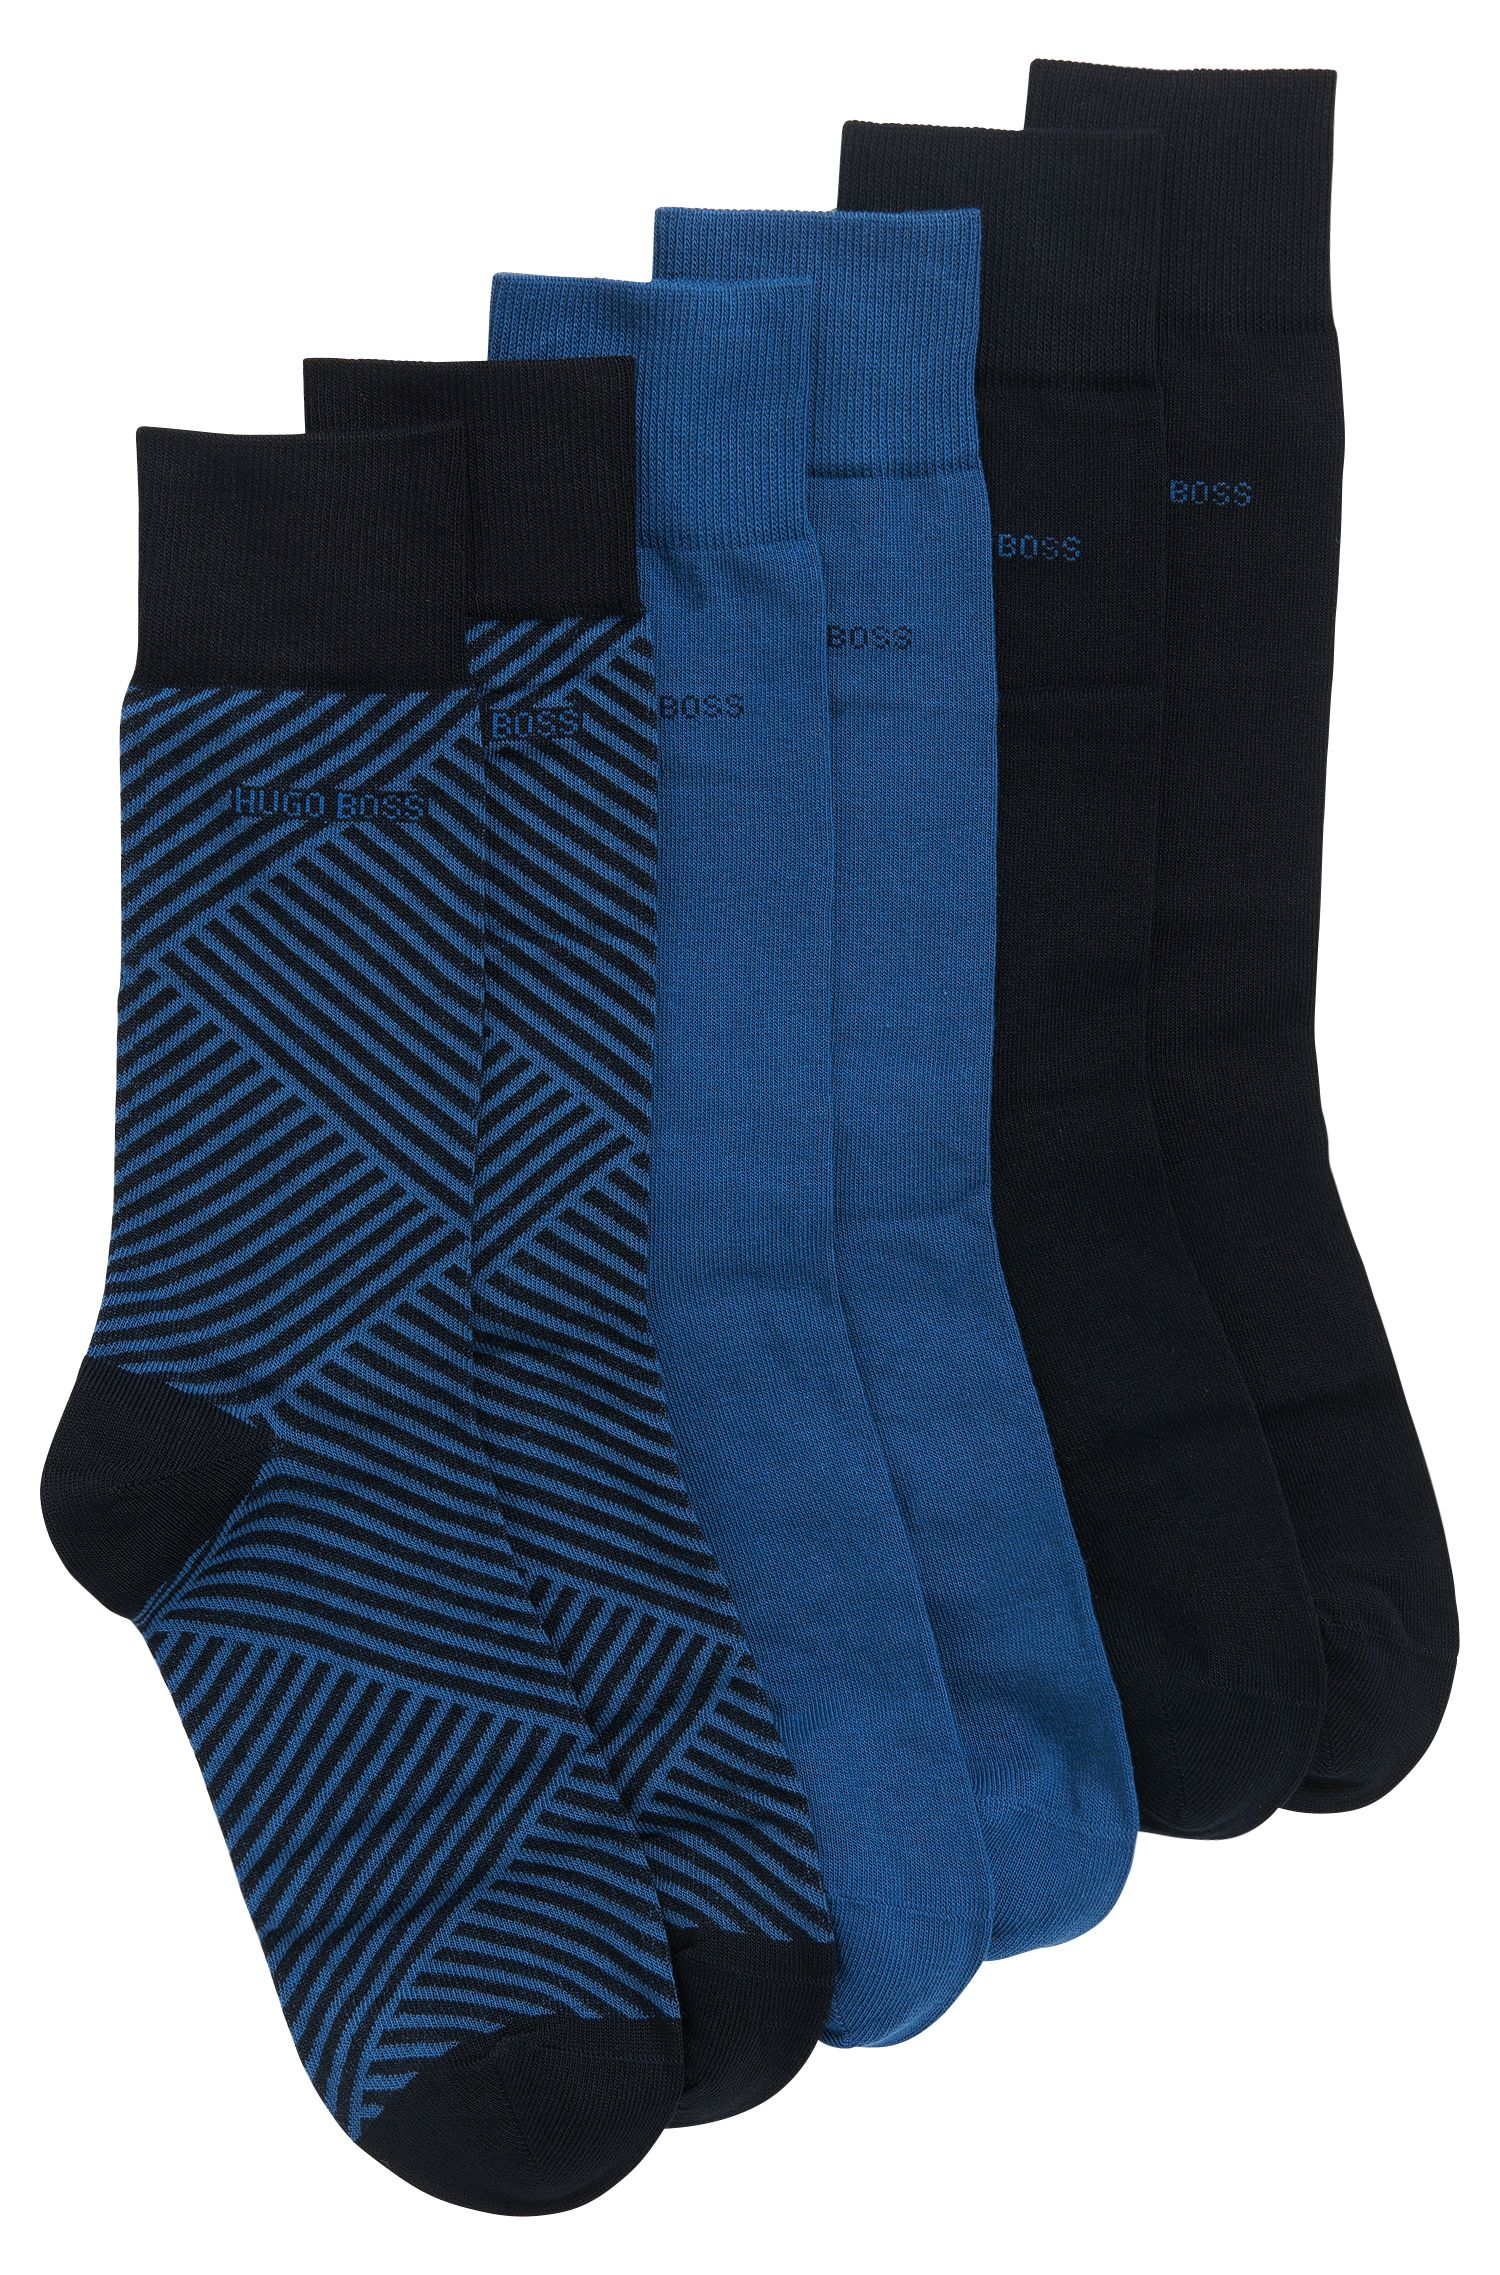 Three-pack of regular-length cotton-blend socks gift set